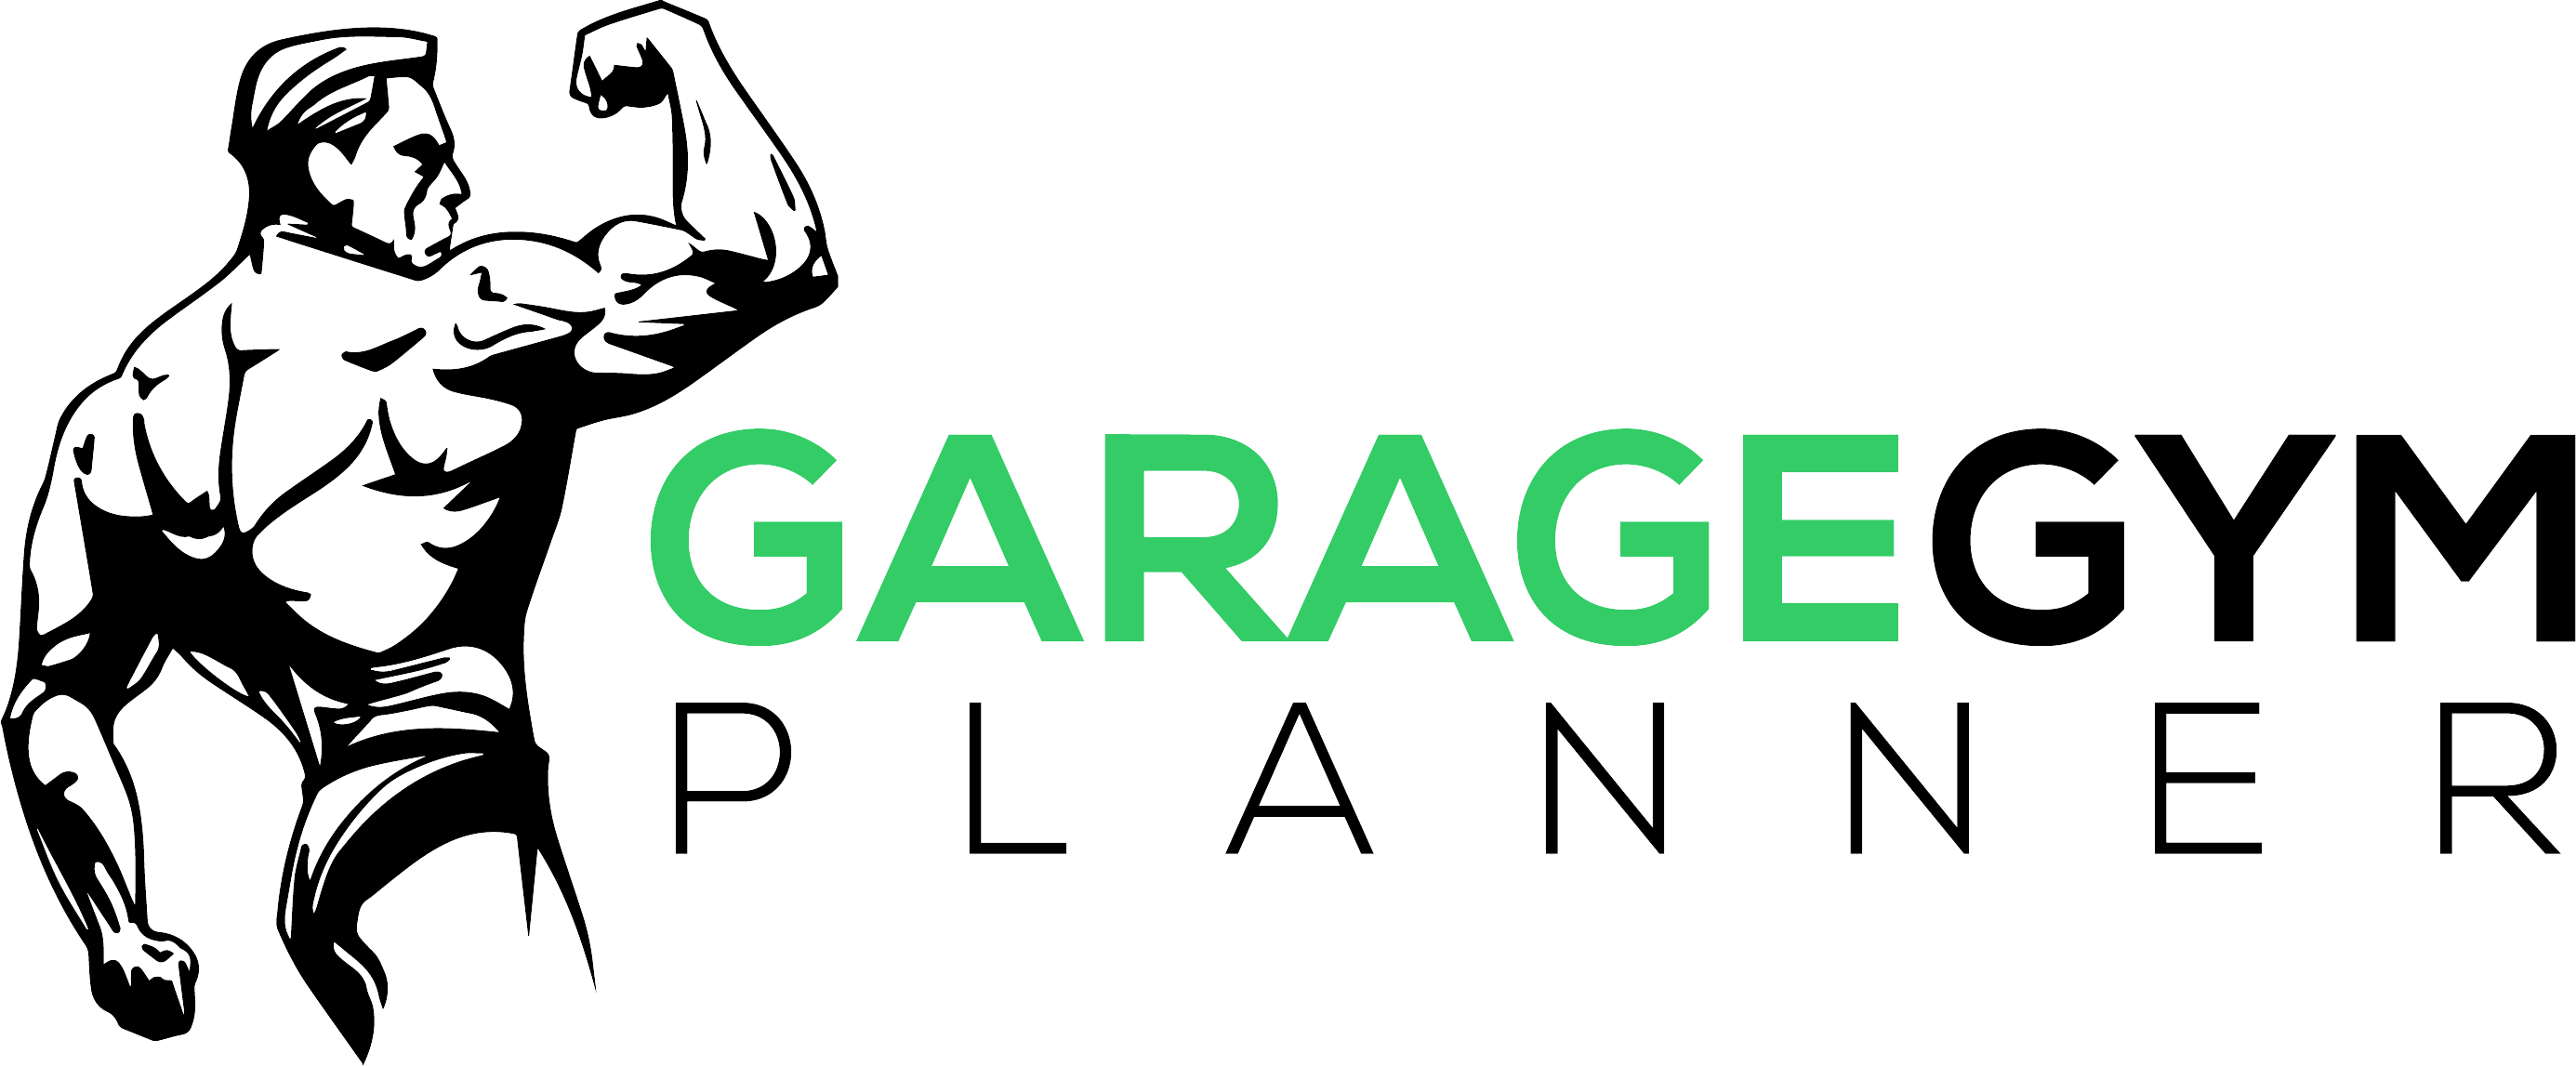 Garage Gym Planner: Best Home/Garage Gym Ideas For 2017